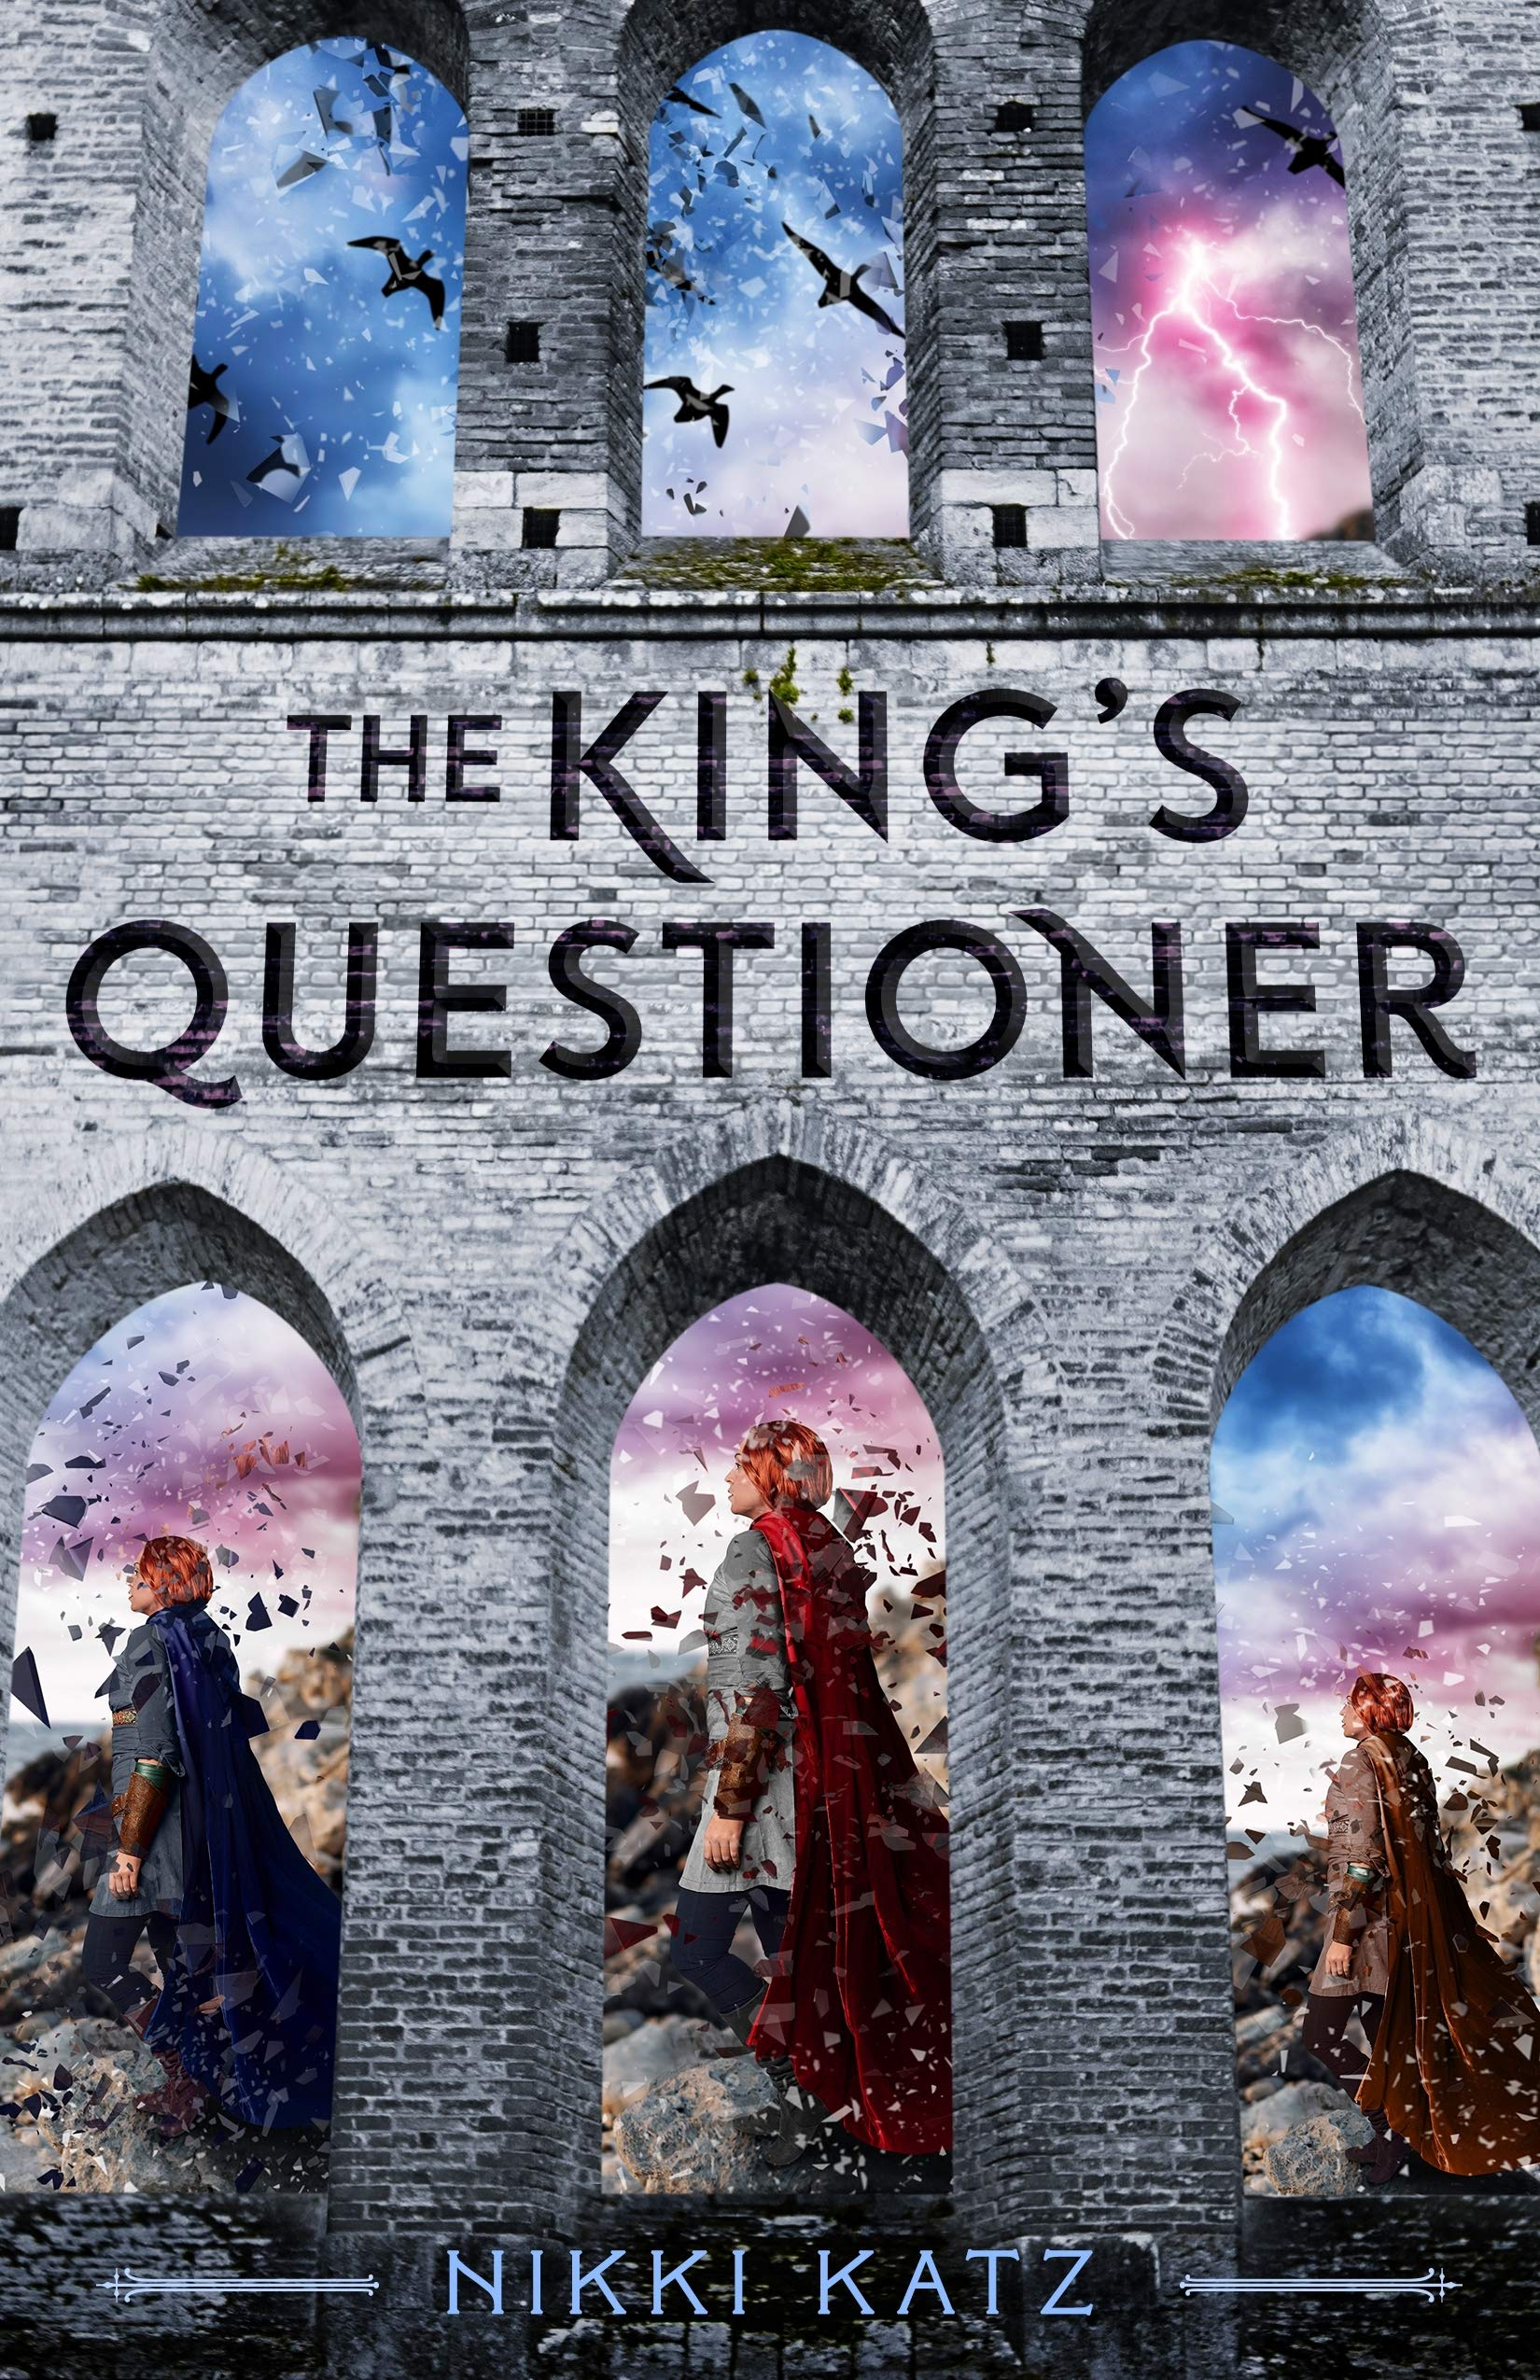 Amazon.com: The King's Questioner (9781250195449): Katz, Nikki: Books